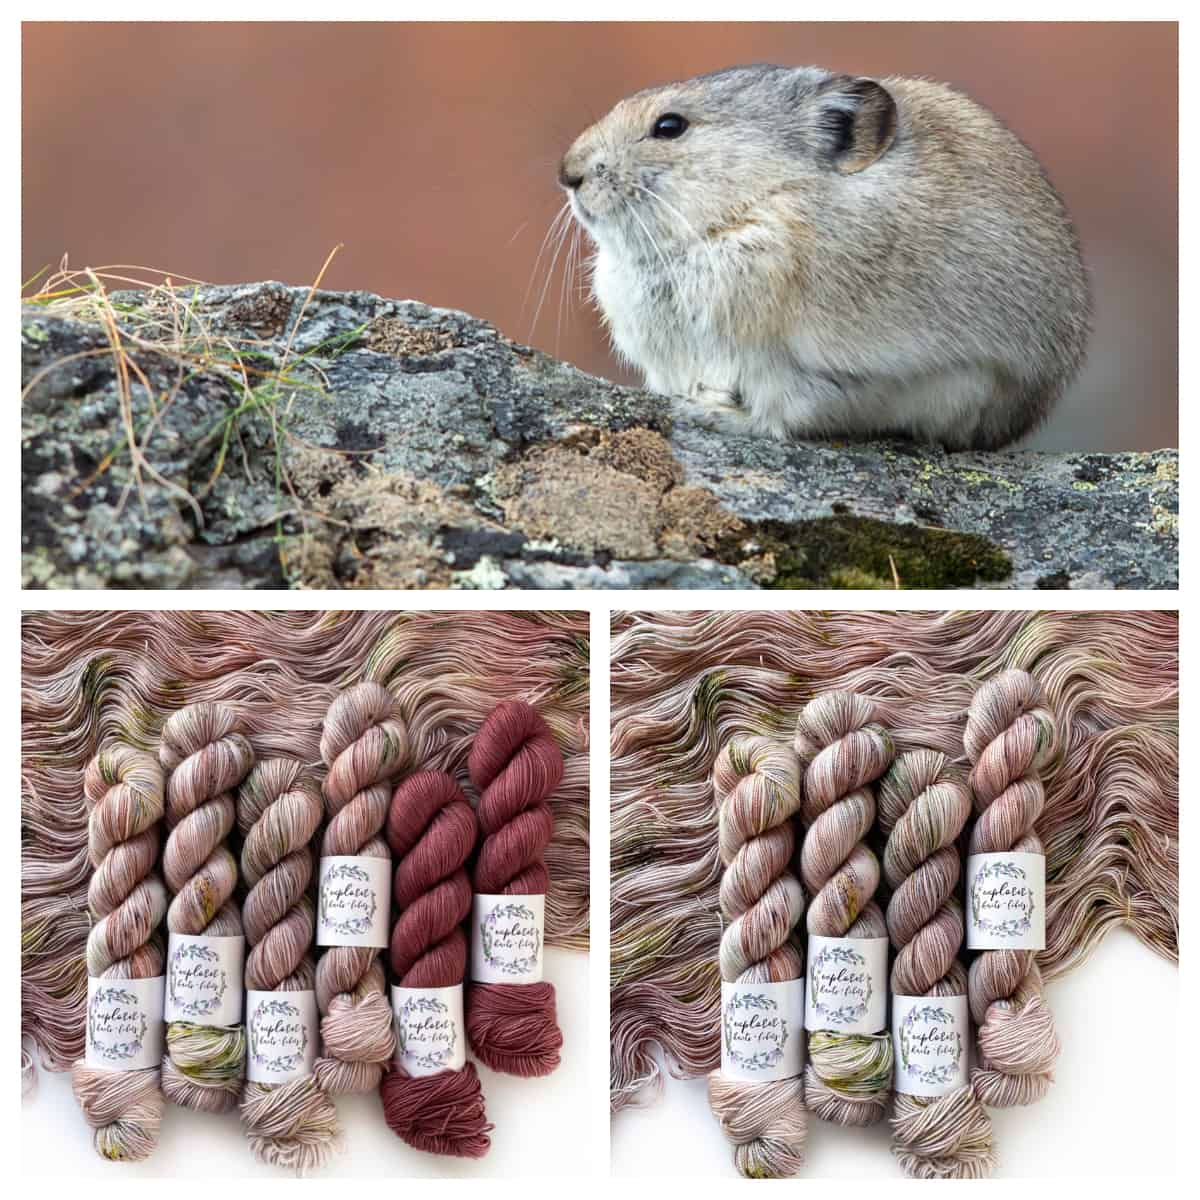 A furry rodent on a mossy rock, and skeins of pink and pink and green speckled yarn.